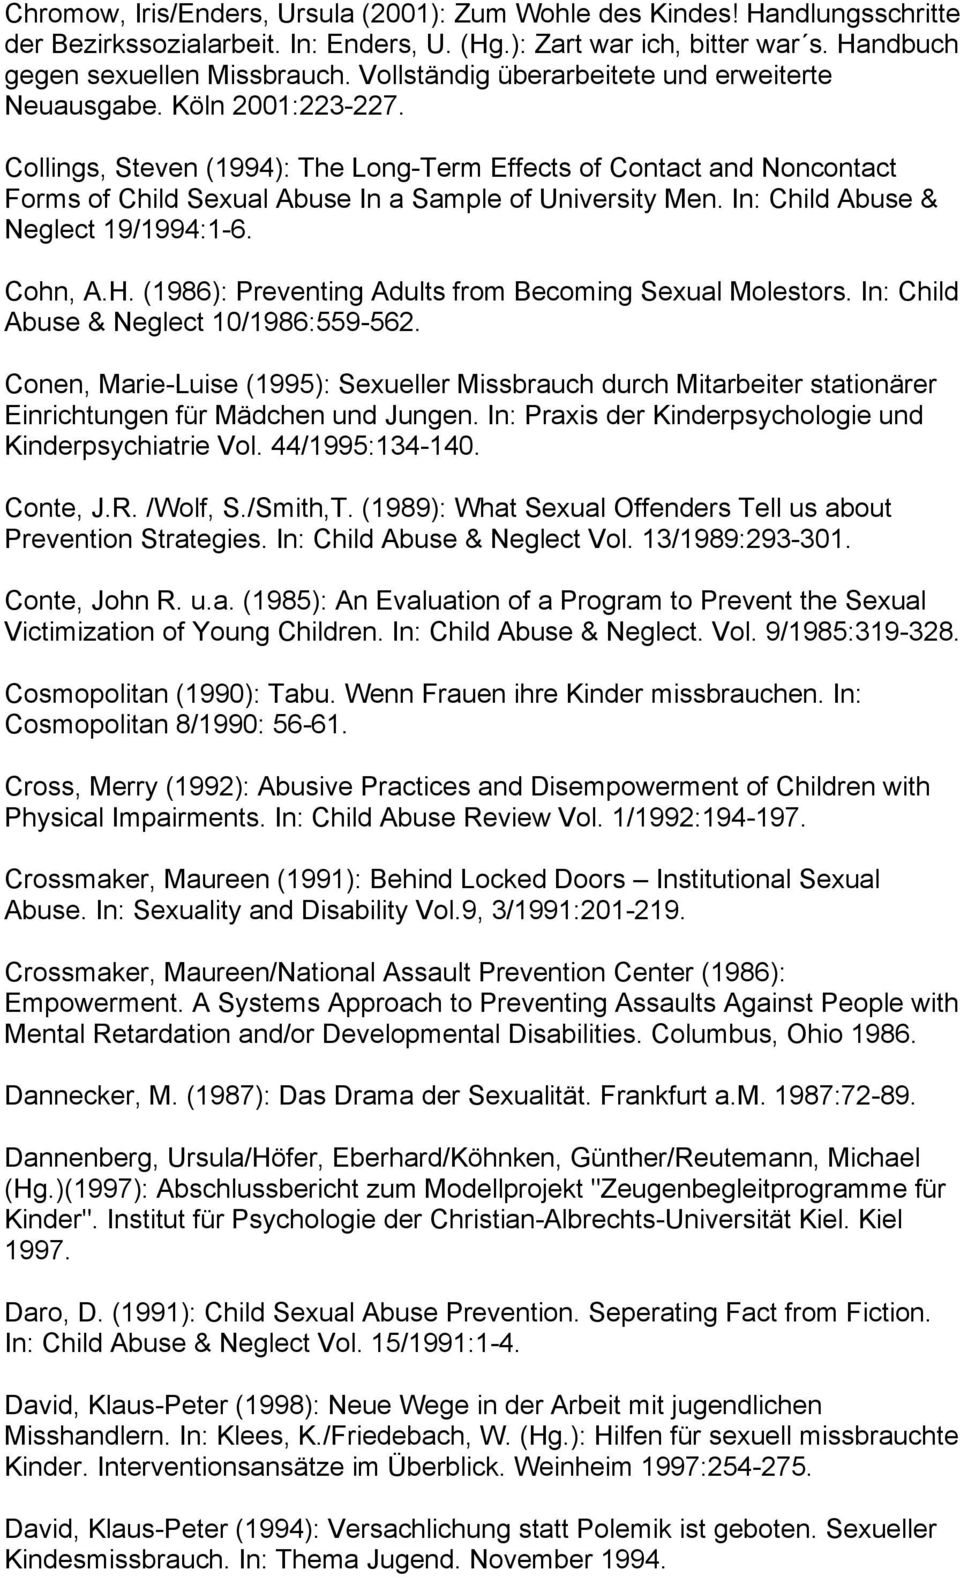 Collings, Steven (1994): The Long-Term Effects of Contact and Noncontact Forms of Child Sexual Abuse In a Sample of University Men. In: Child Abuse & Neglect 19/1994:1-6. Cohn, A.H.